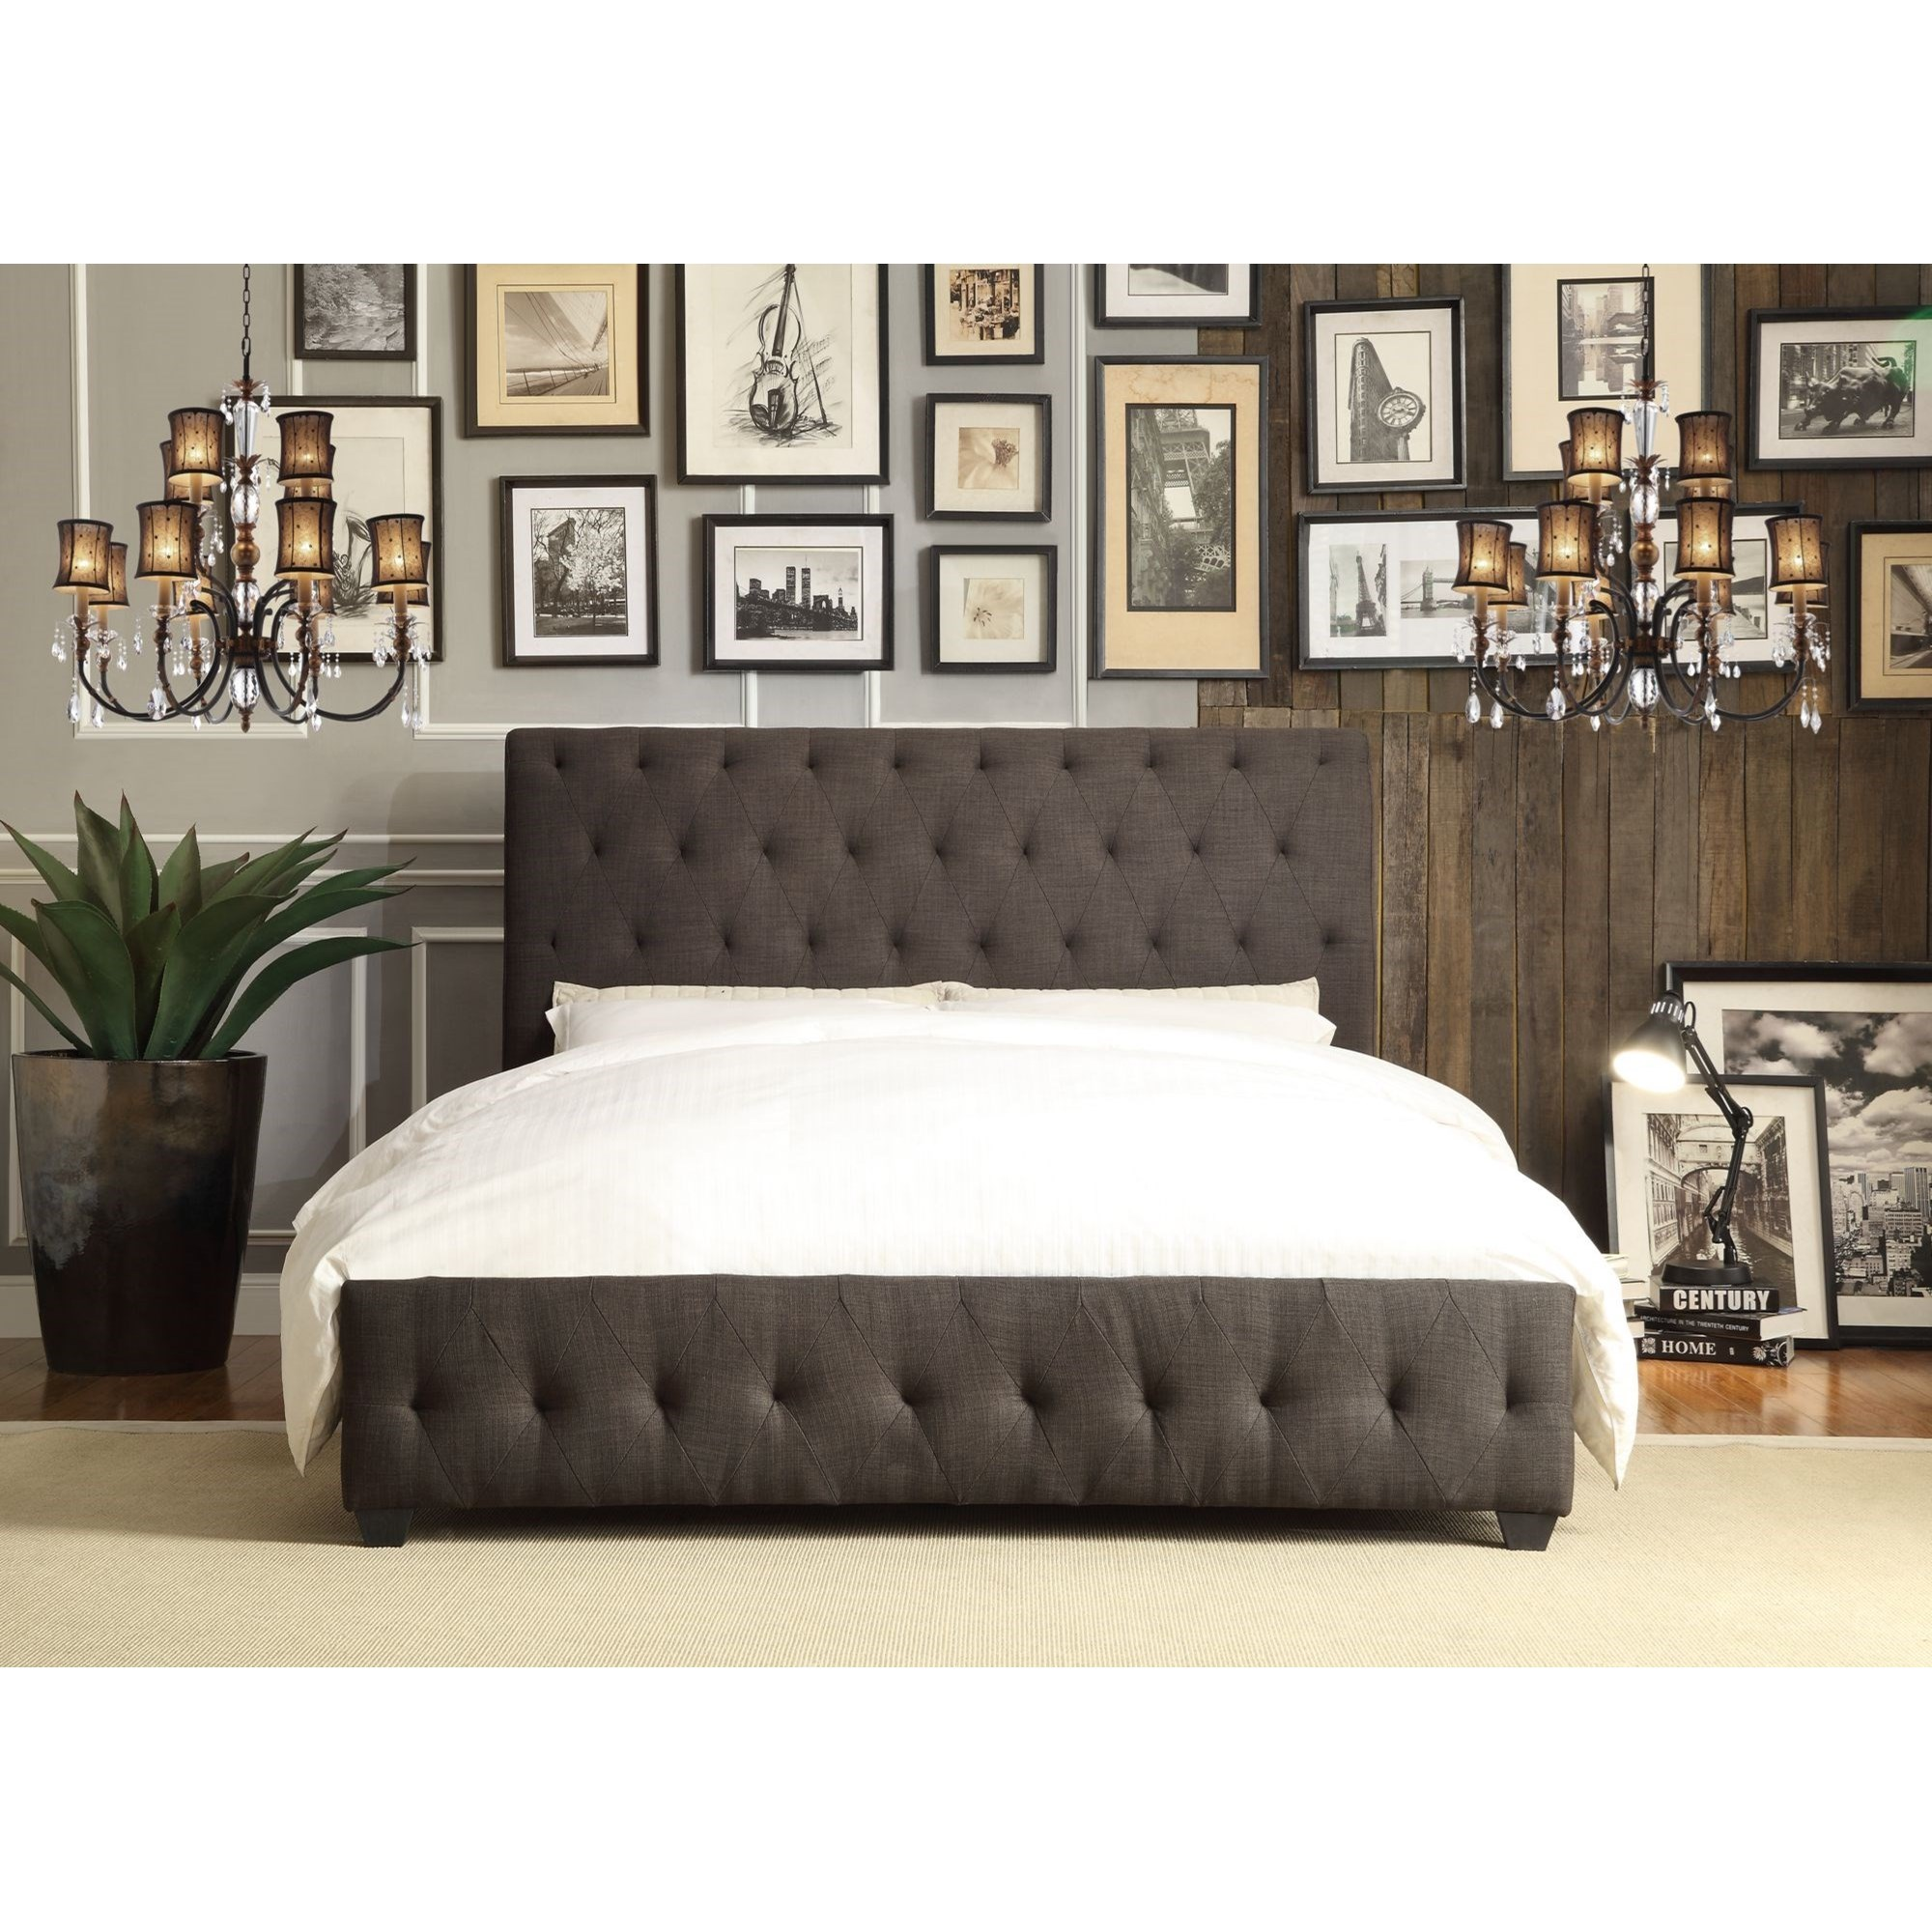 Contemporary King Upholstered Sleigh Bed